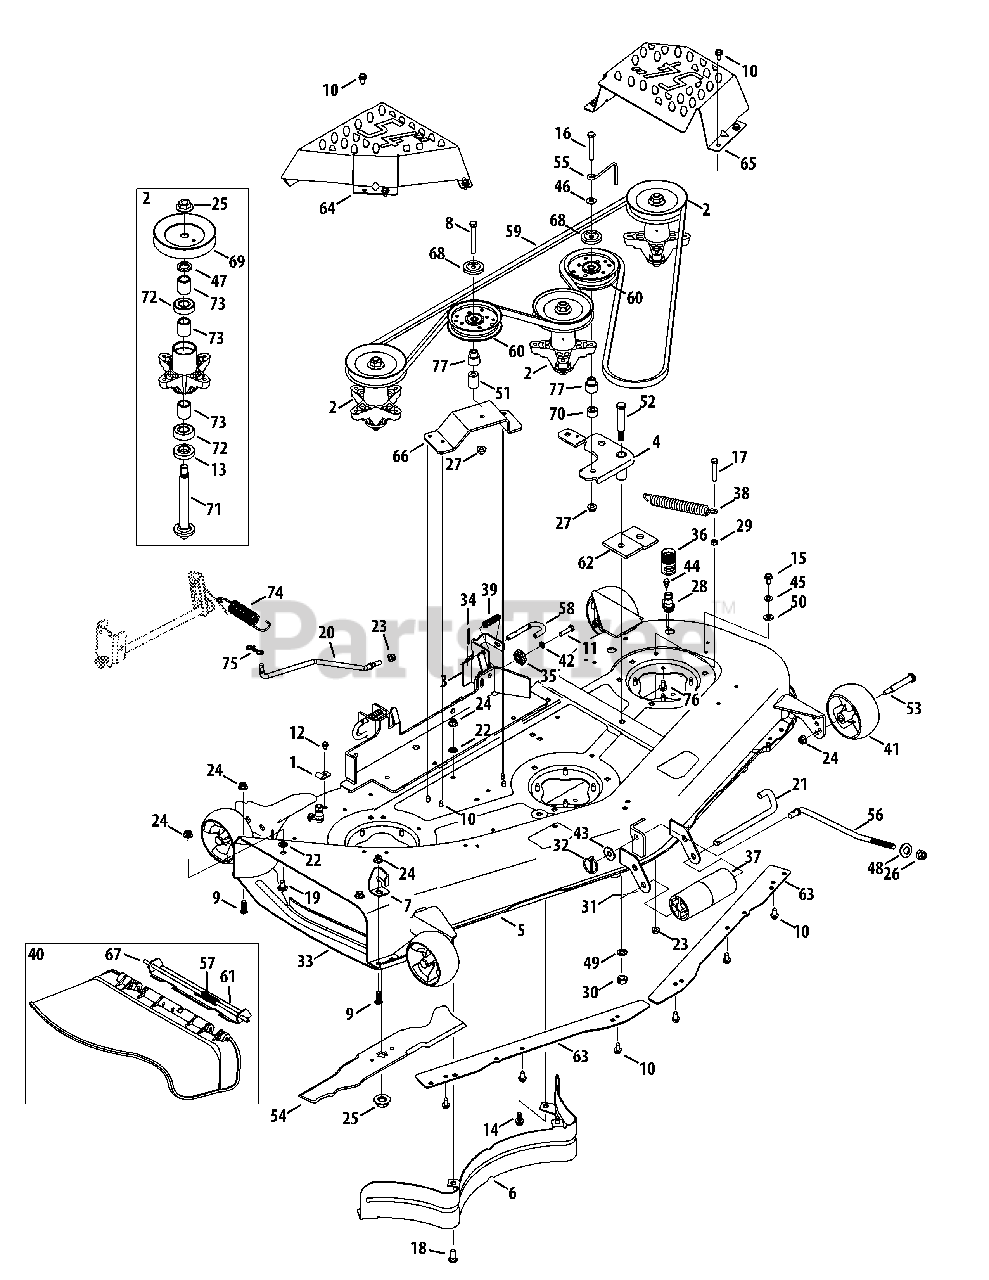 Cub Cadet Parts on the Mower Deck 54-Inch Diagram for LGTX